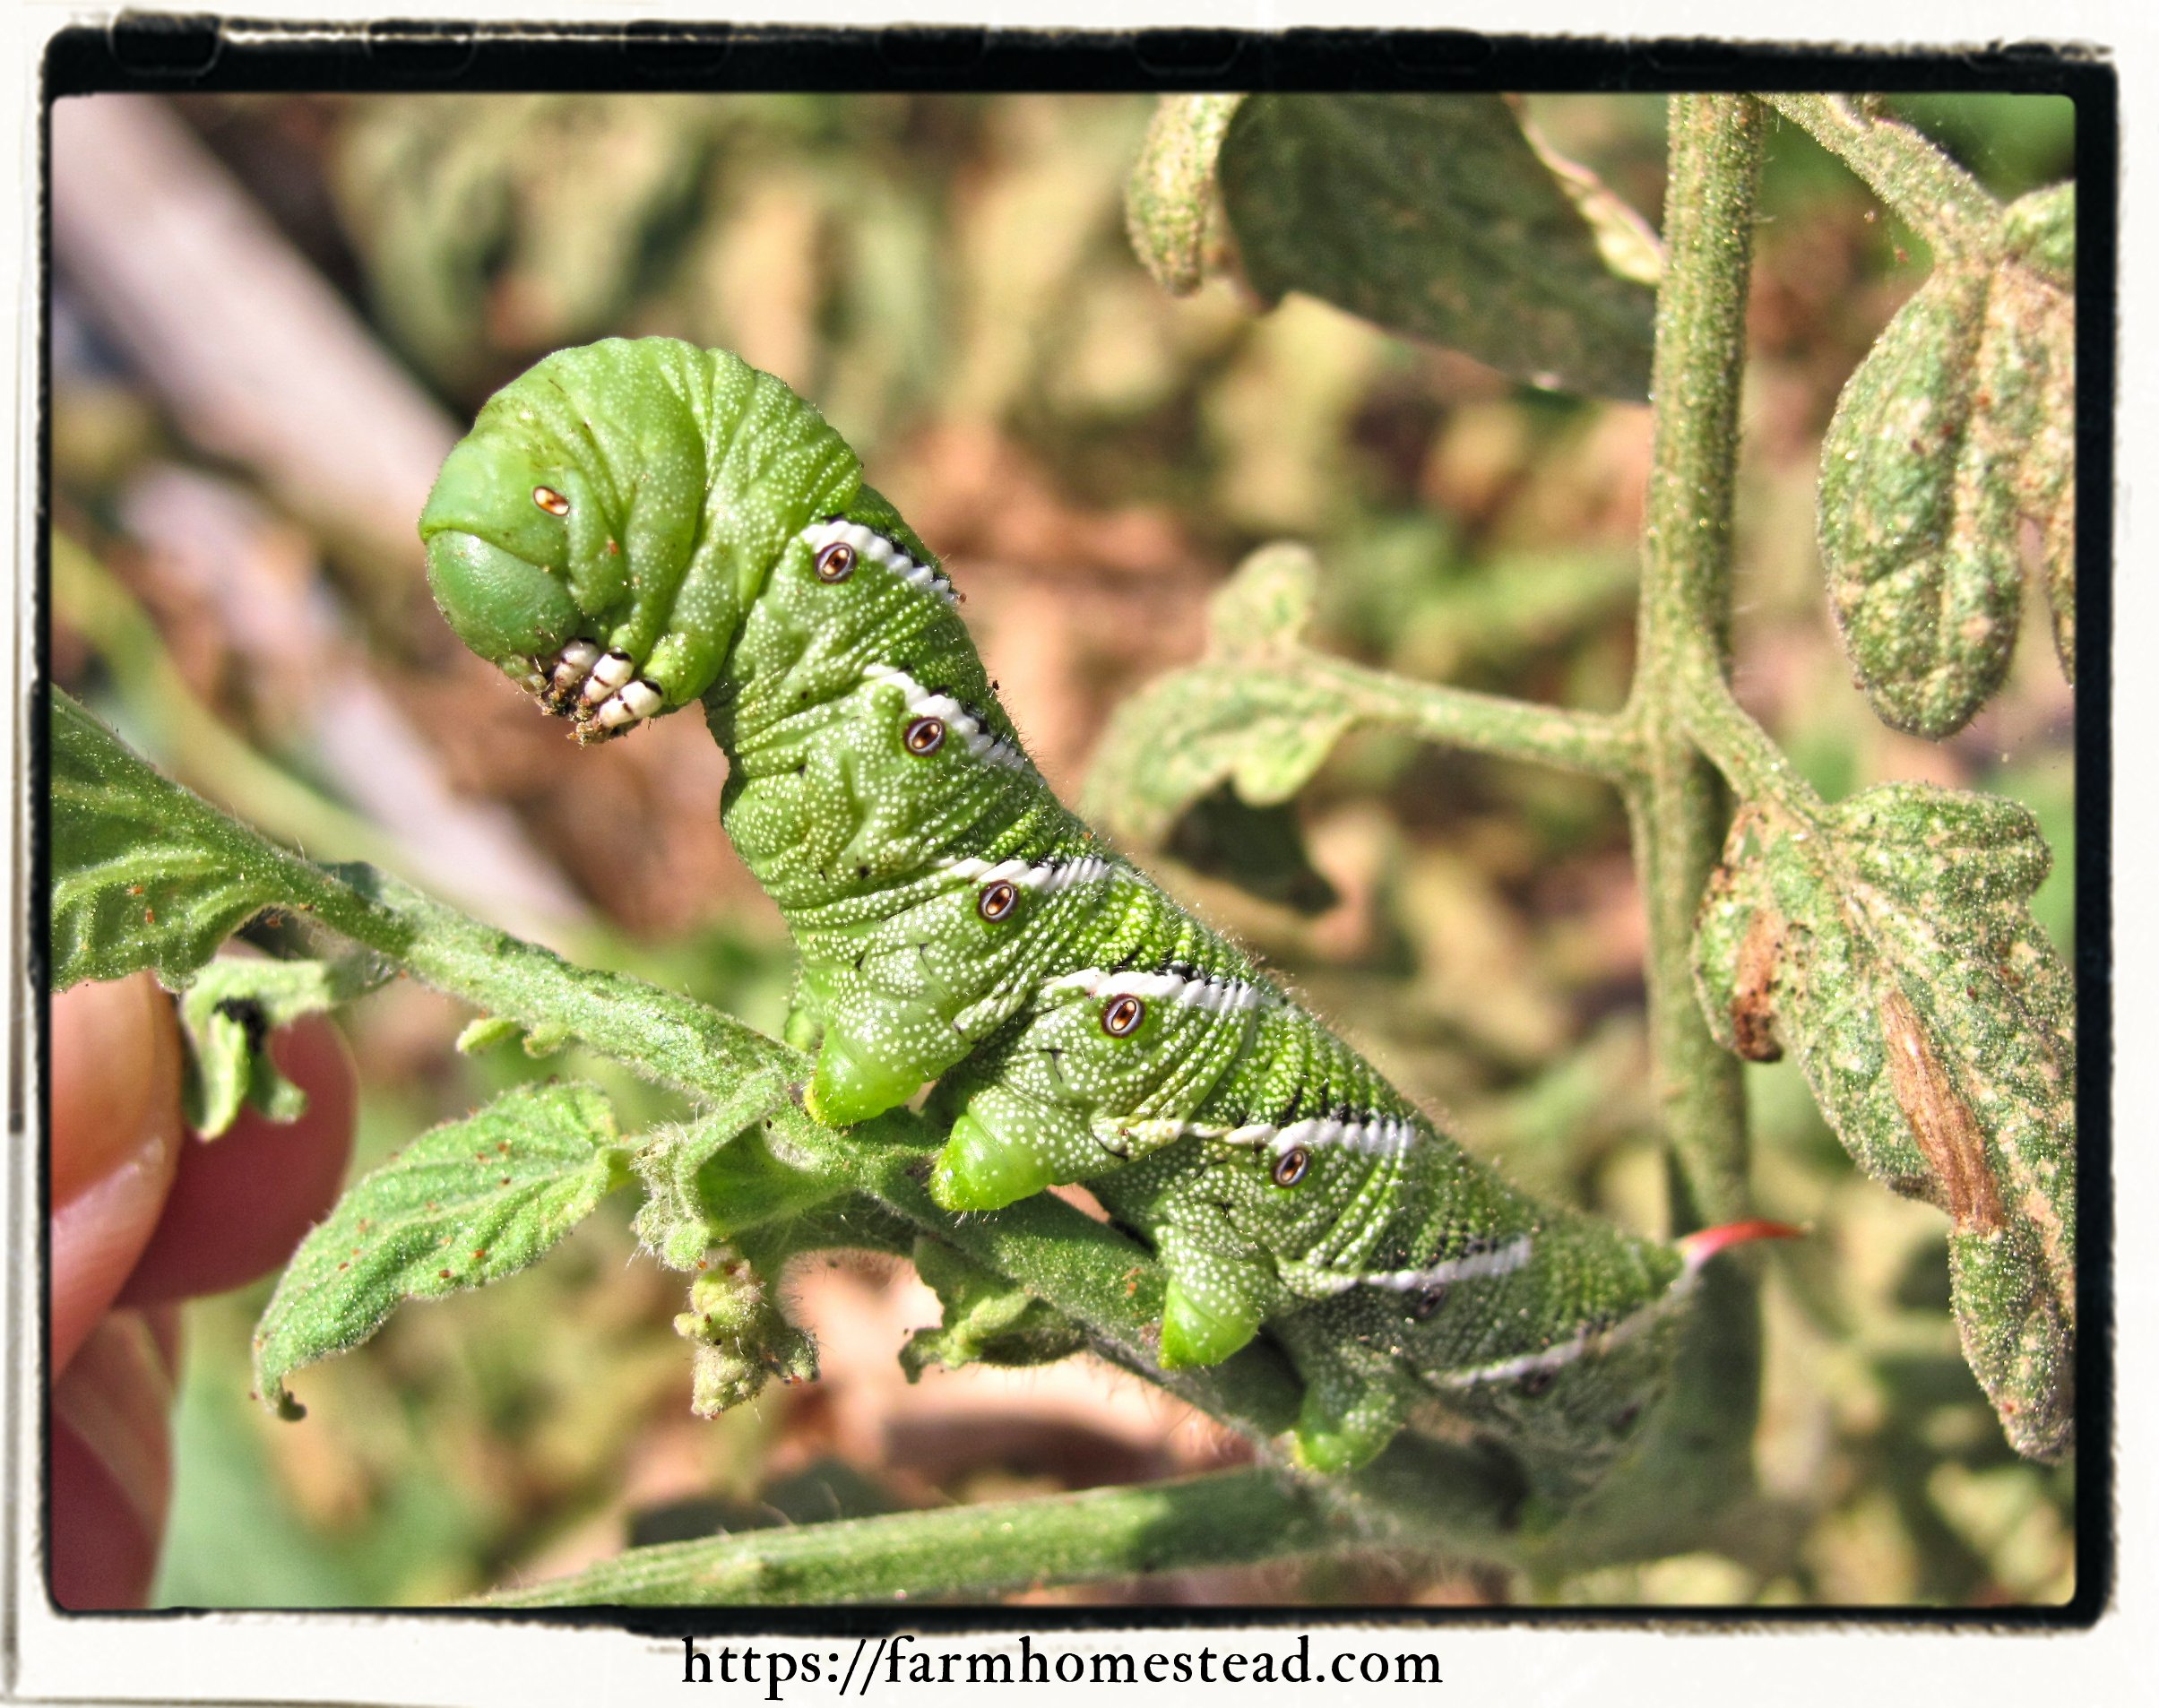 tomato hornworm up close